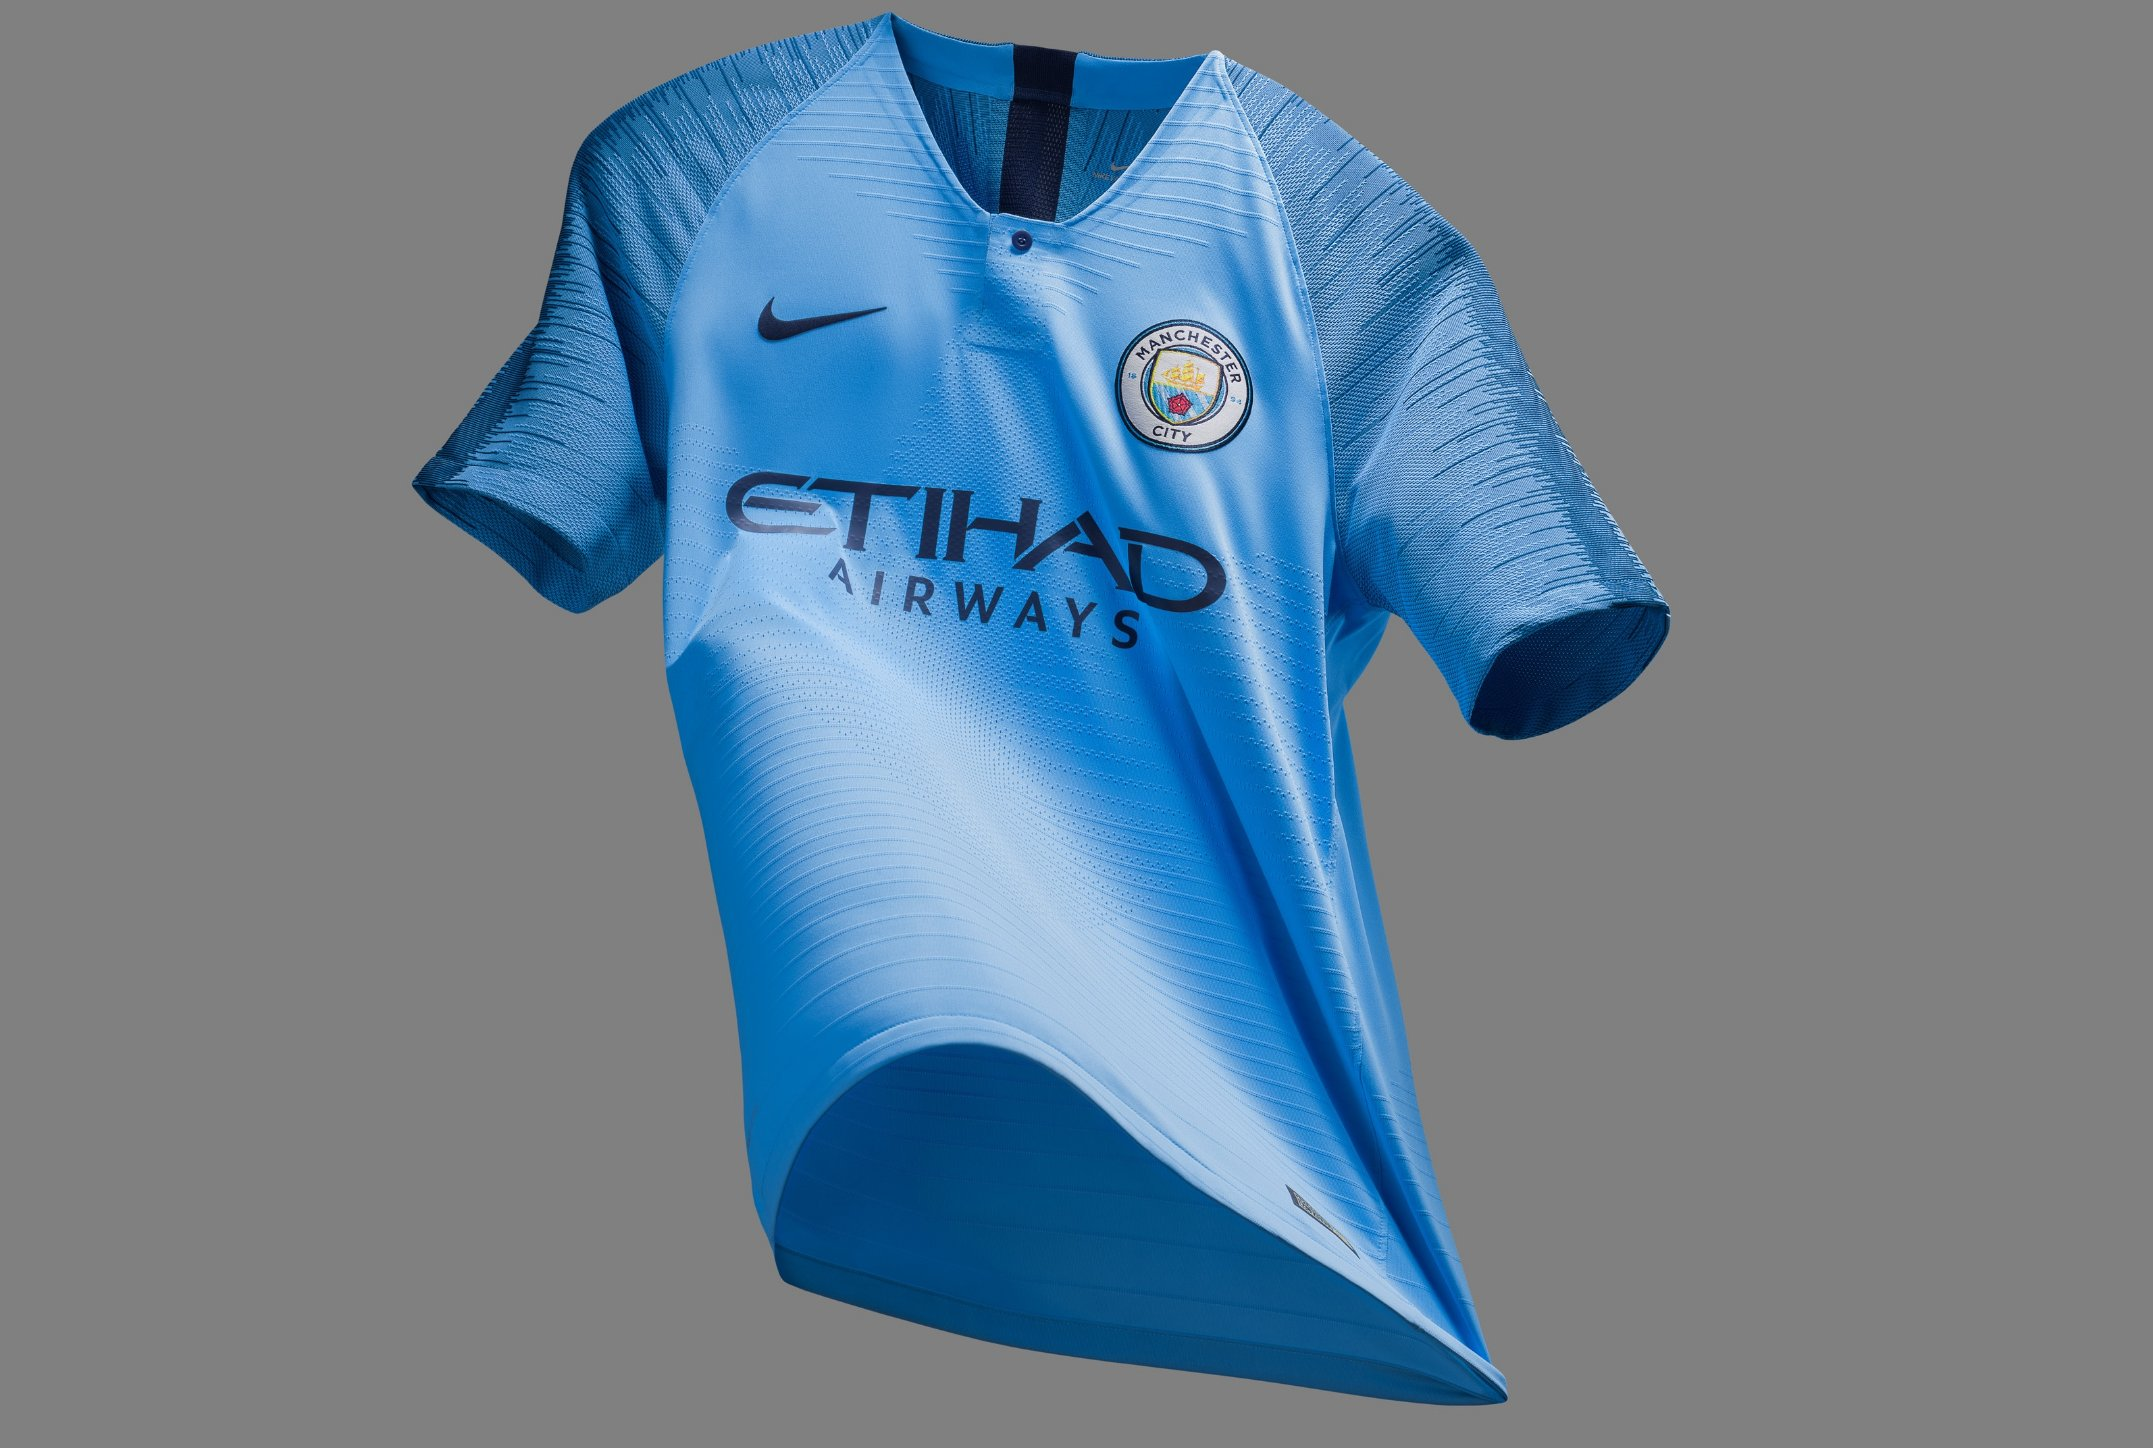 Camisa Nike MANCHESTER CITY 18 19 Home TORCEDOR - Sandes Sports ... d2f9714900bc4